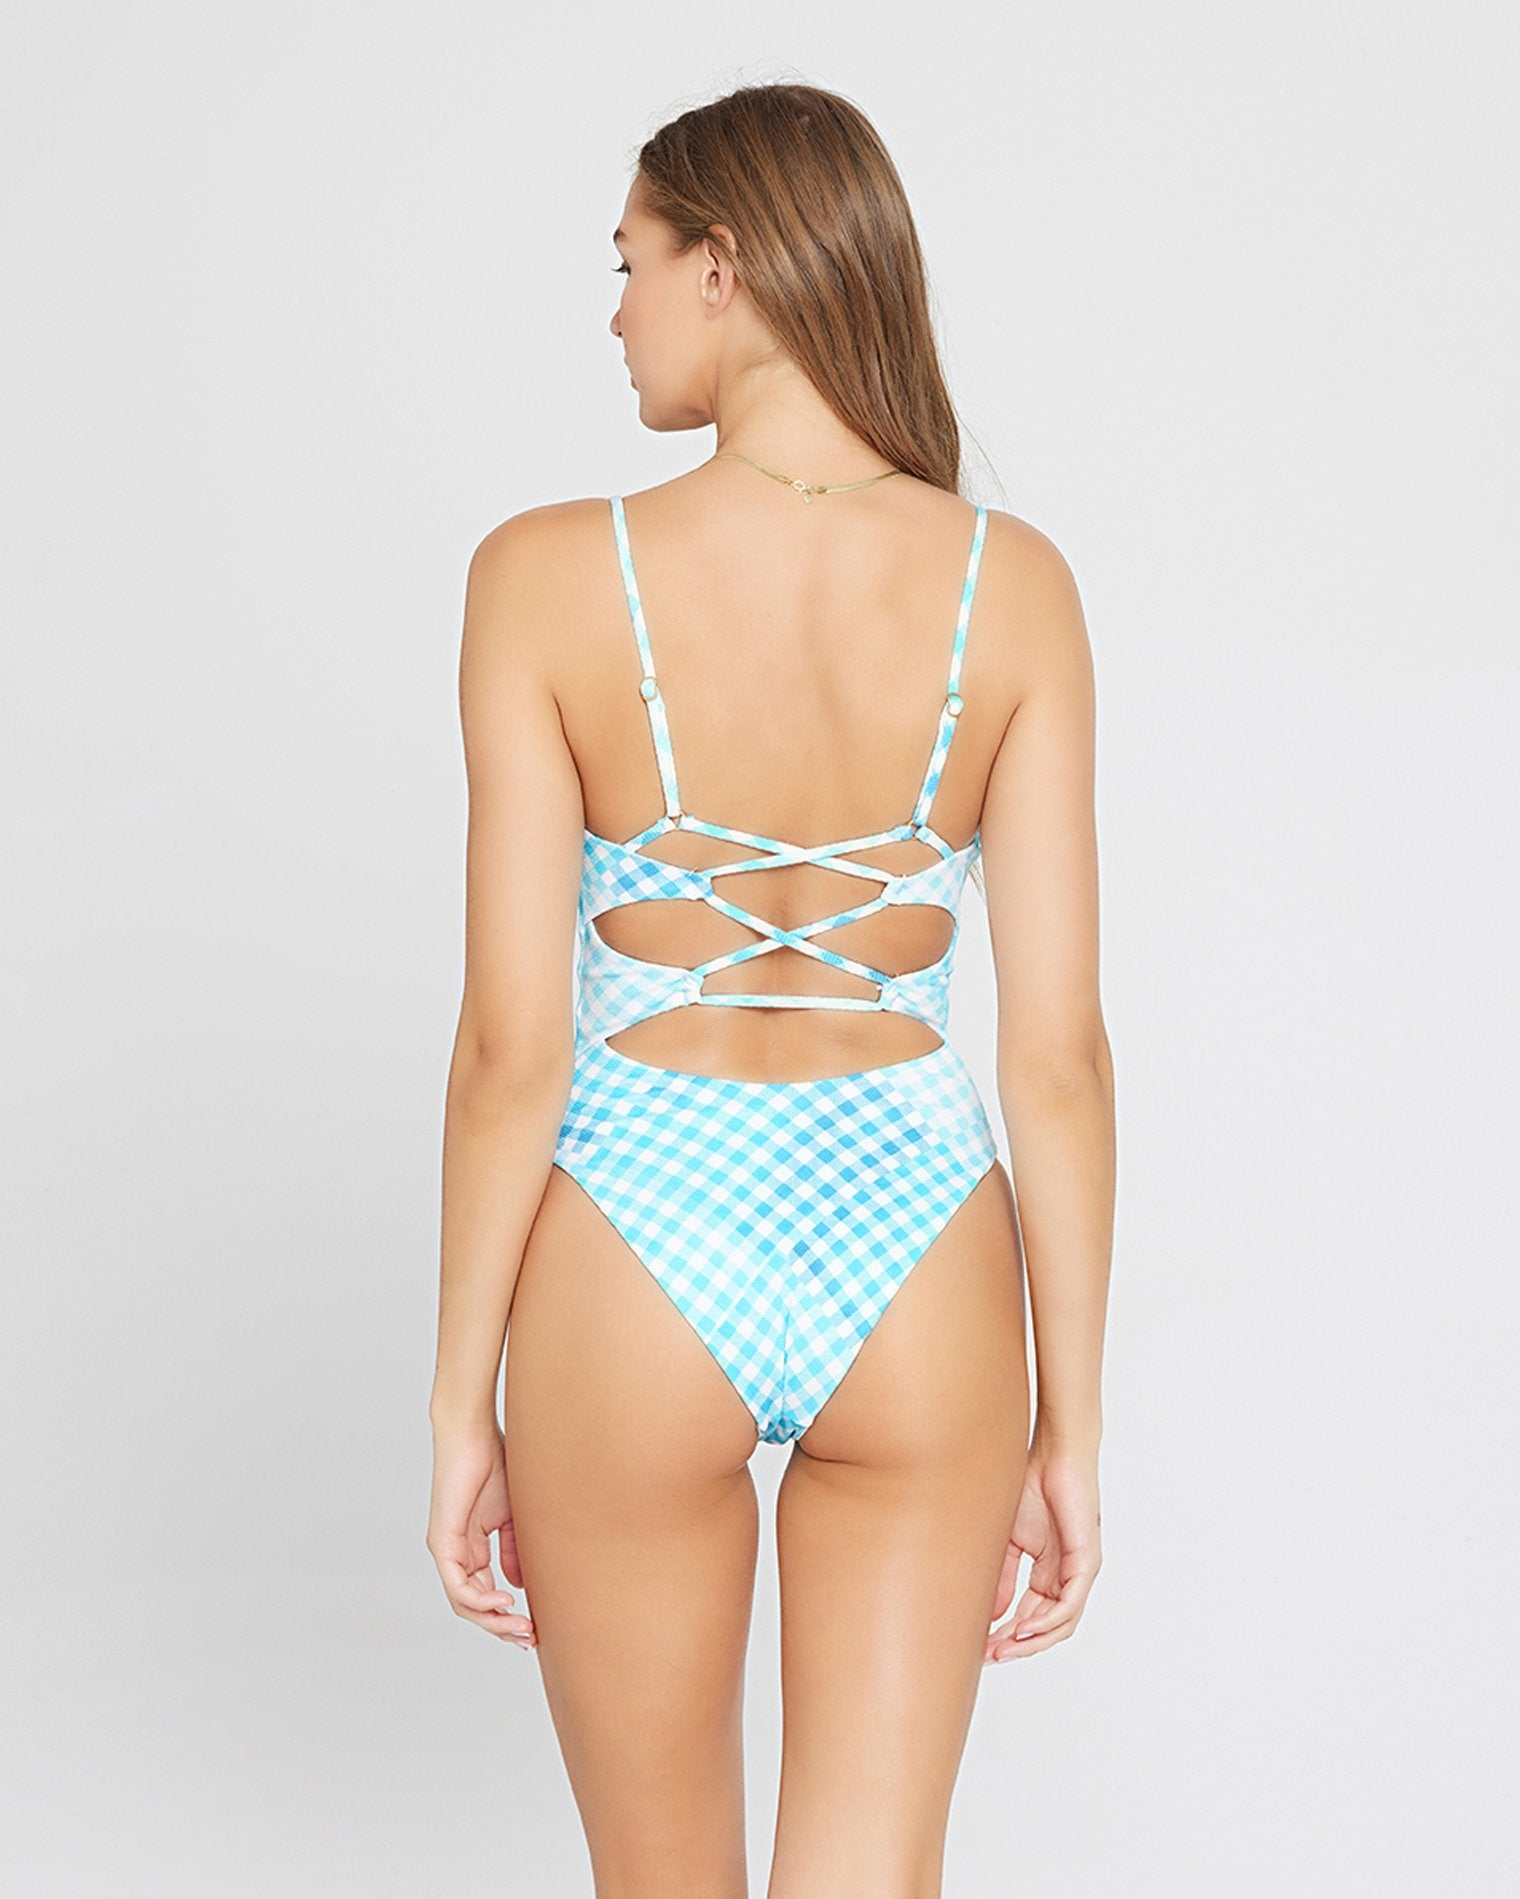 Gianna One Piece Swimsuit